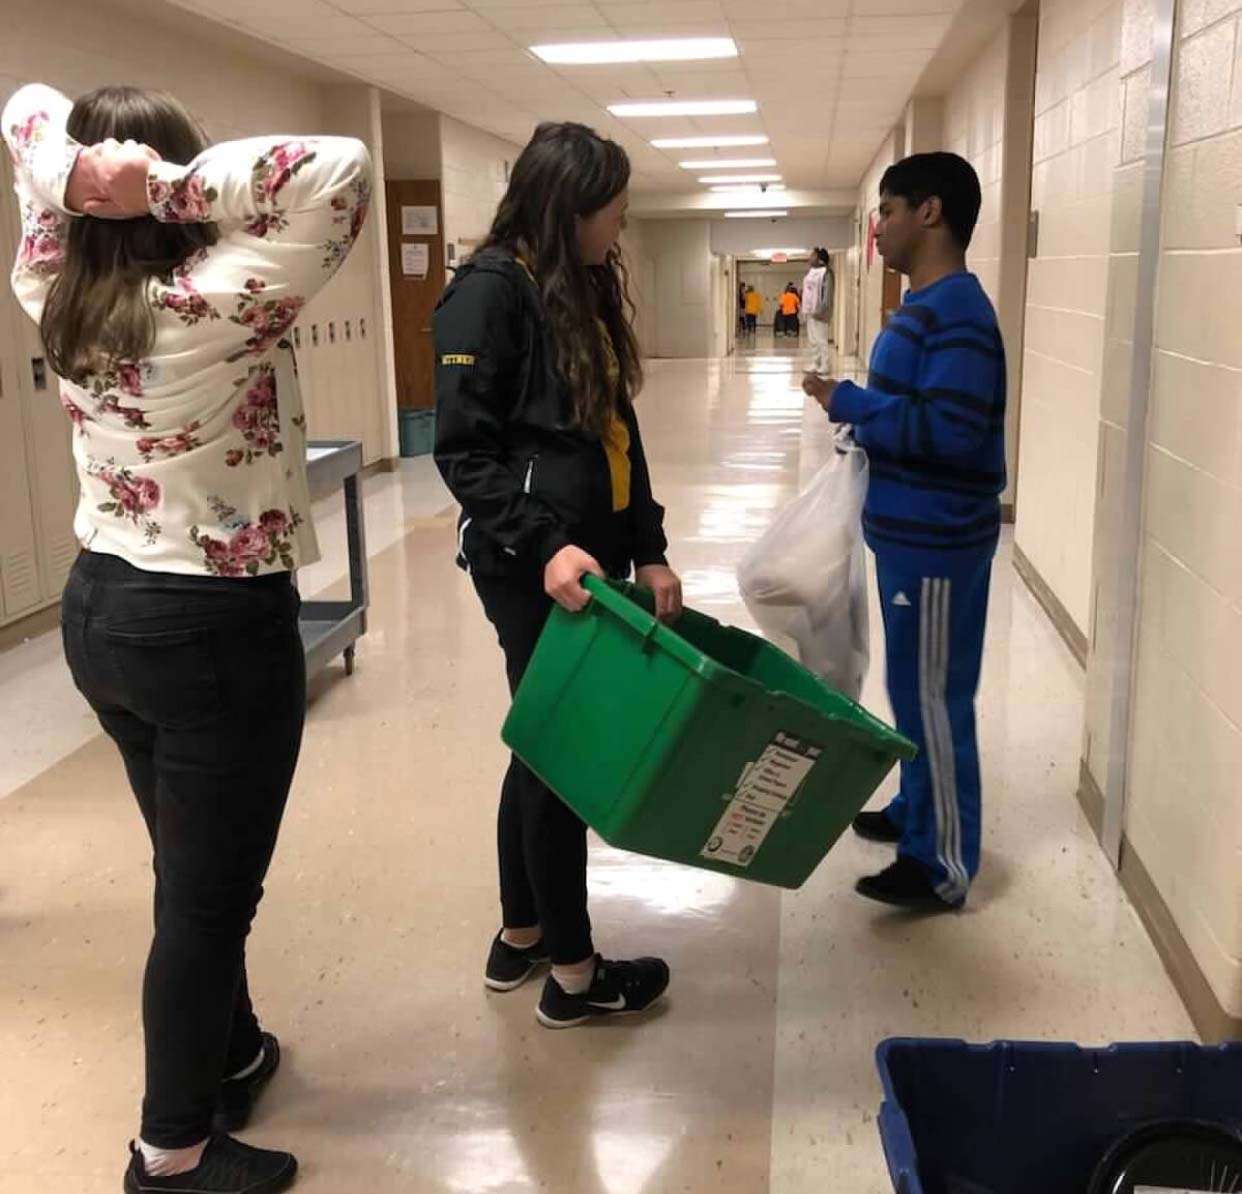 Peer mentors help students do the recycling for each classroom in the building.